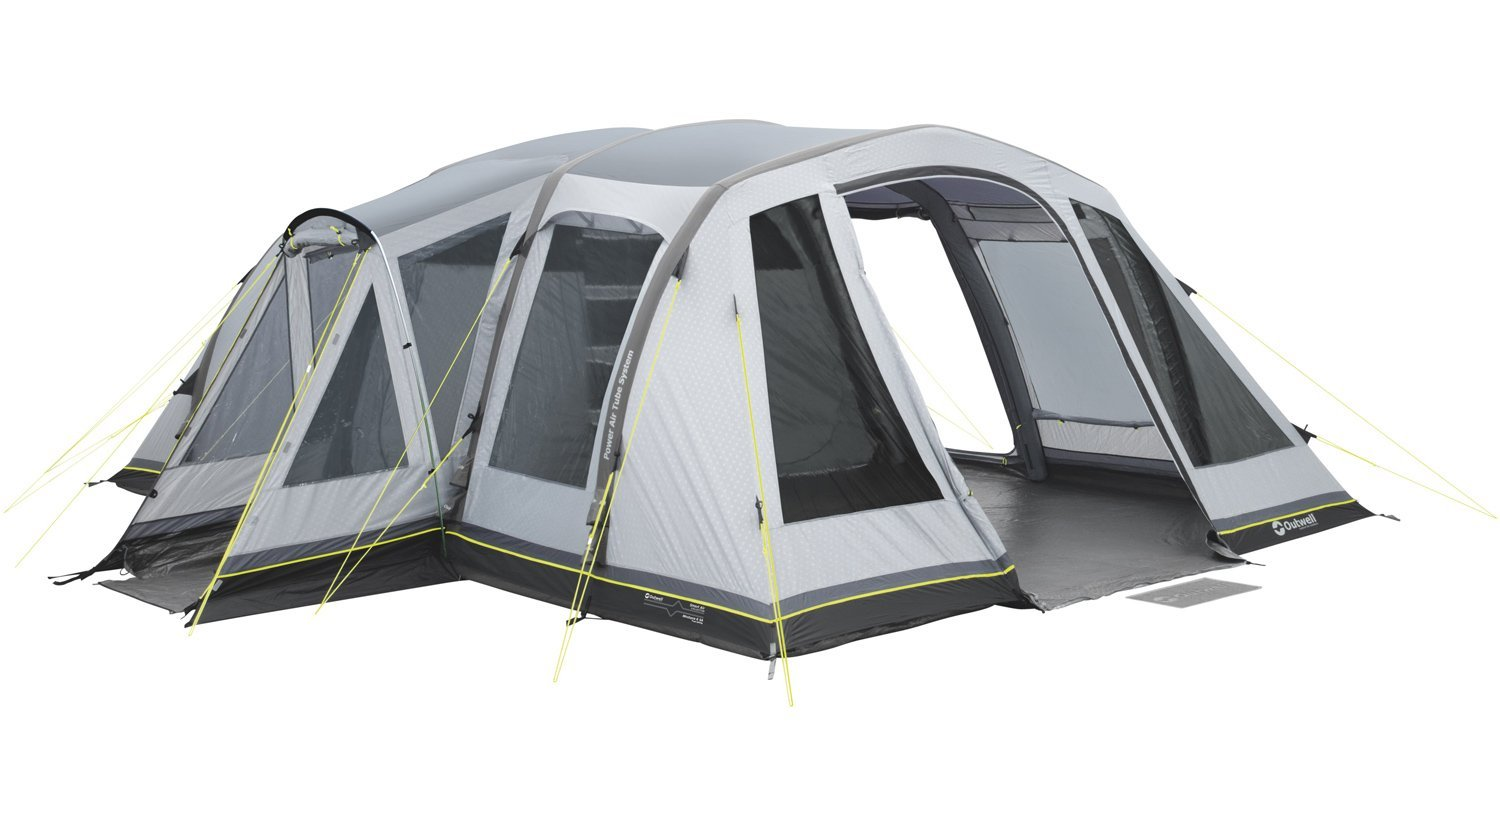 cda9c65f074dc Best inflatable tents family camping - UK 2019 | Top 9 Best ...